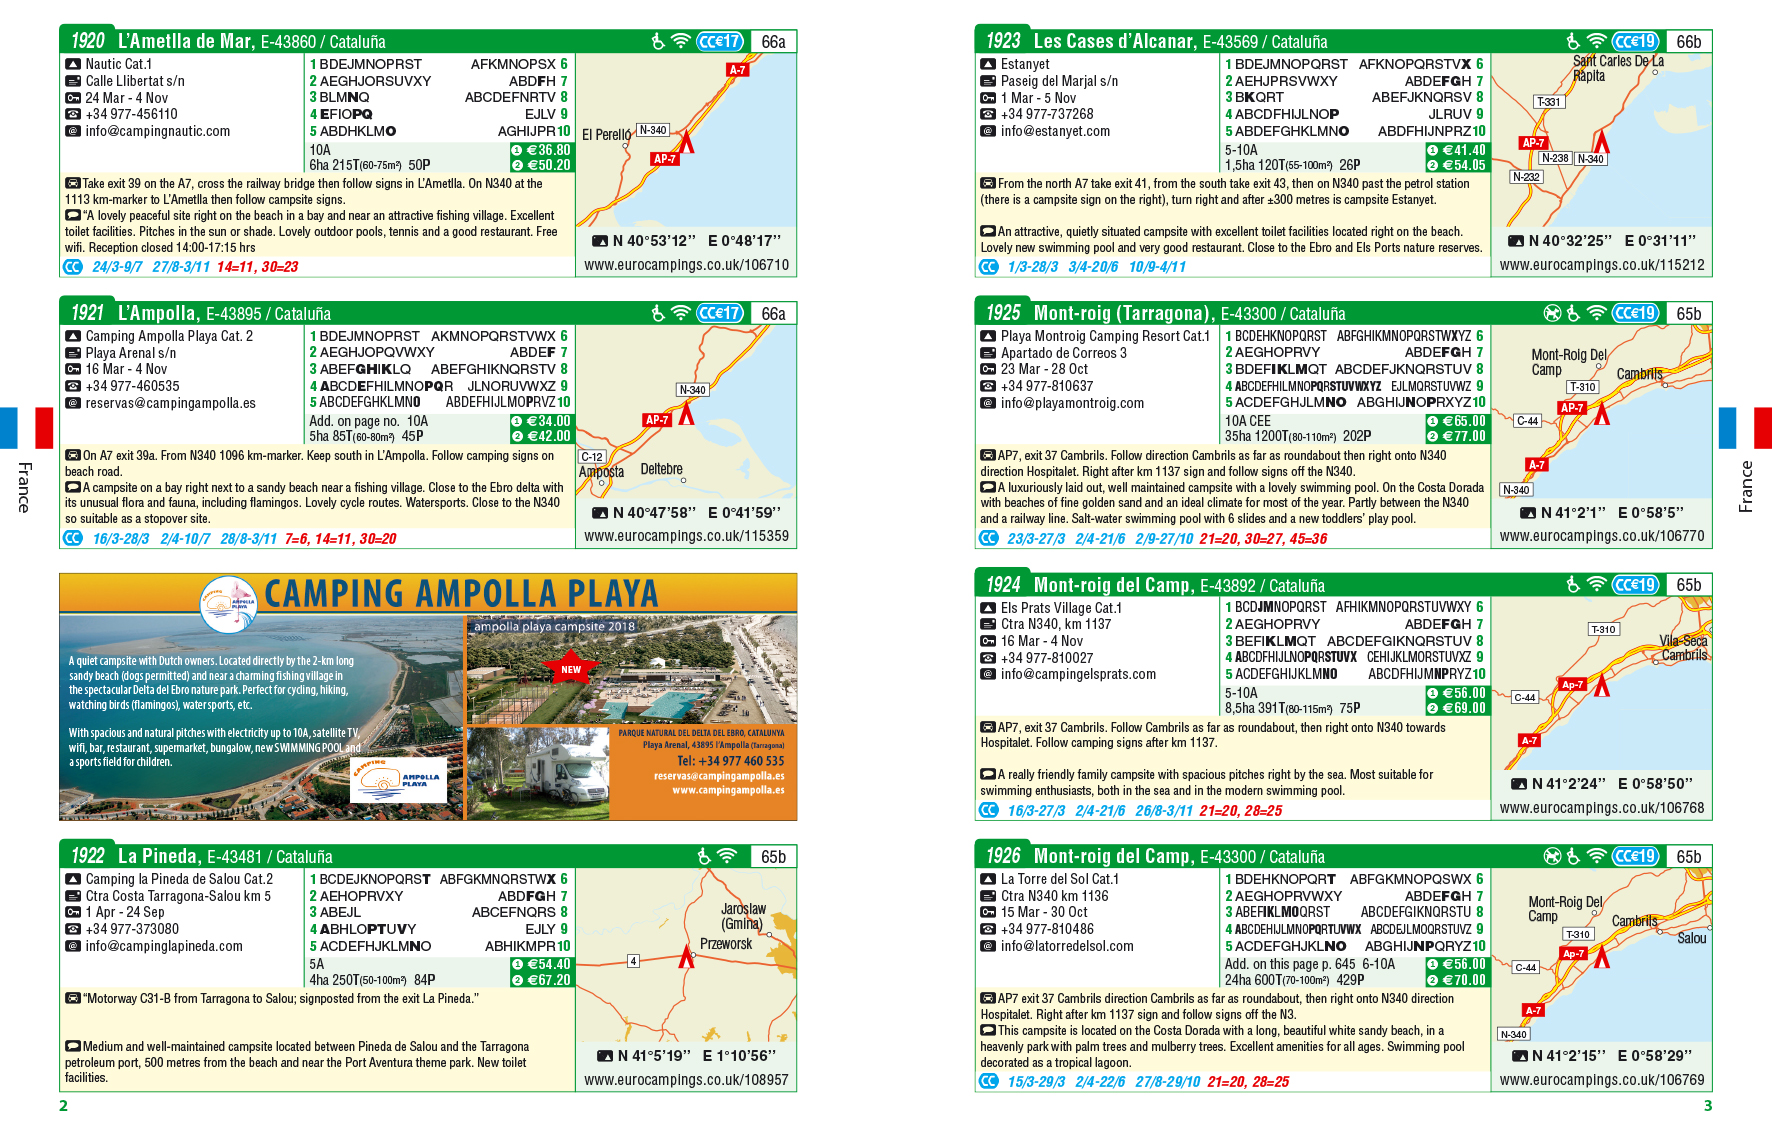 Campsites guide inside